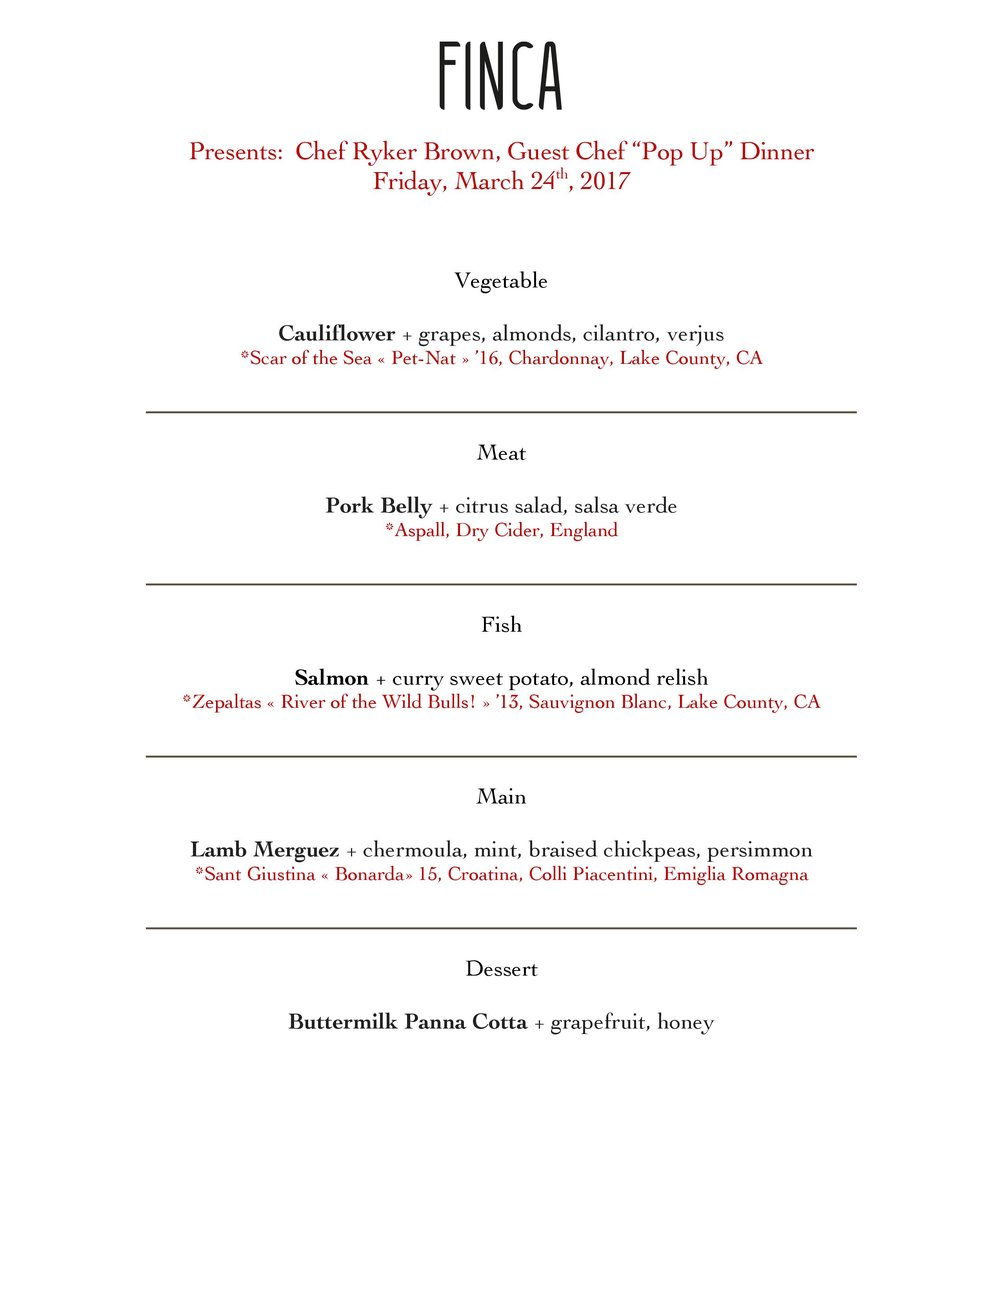 Chef Ryker Pop Up Dinner Menu-page-001-2.jpg